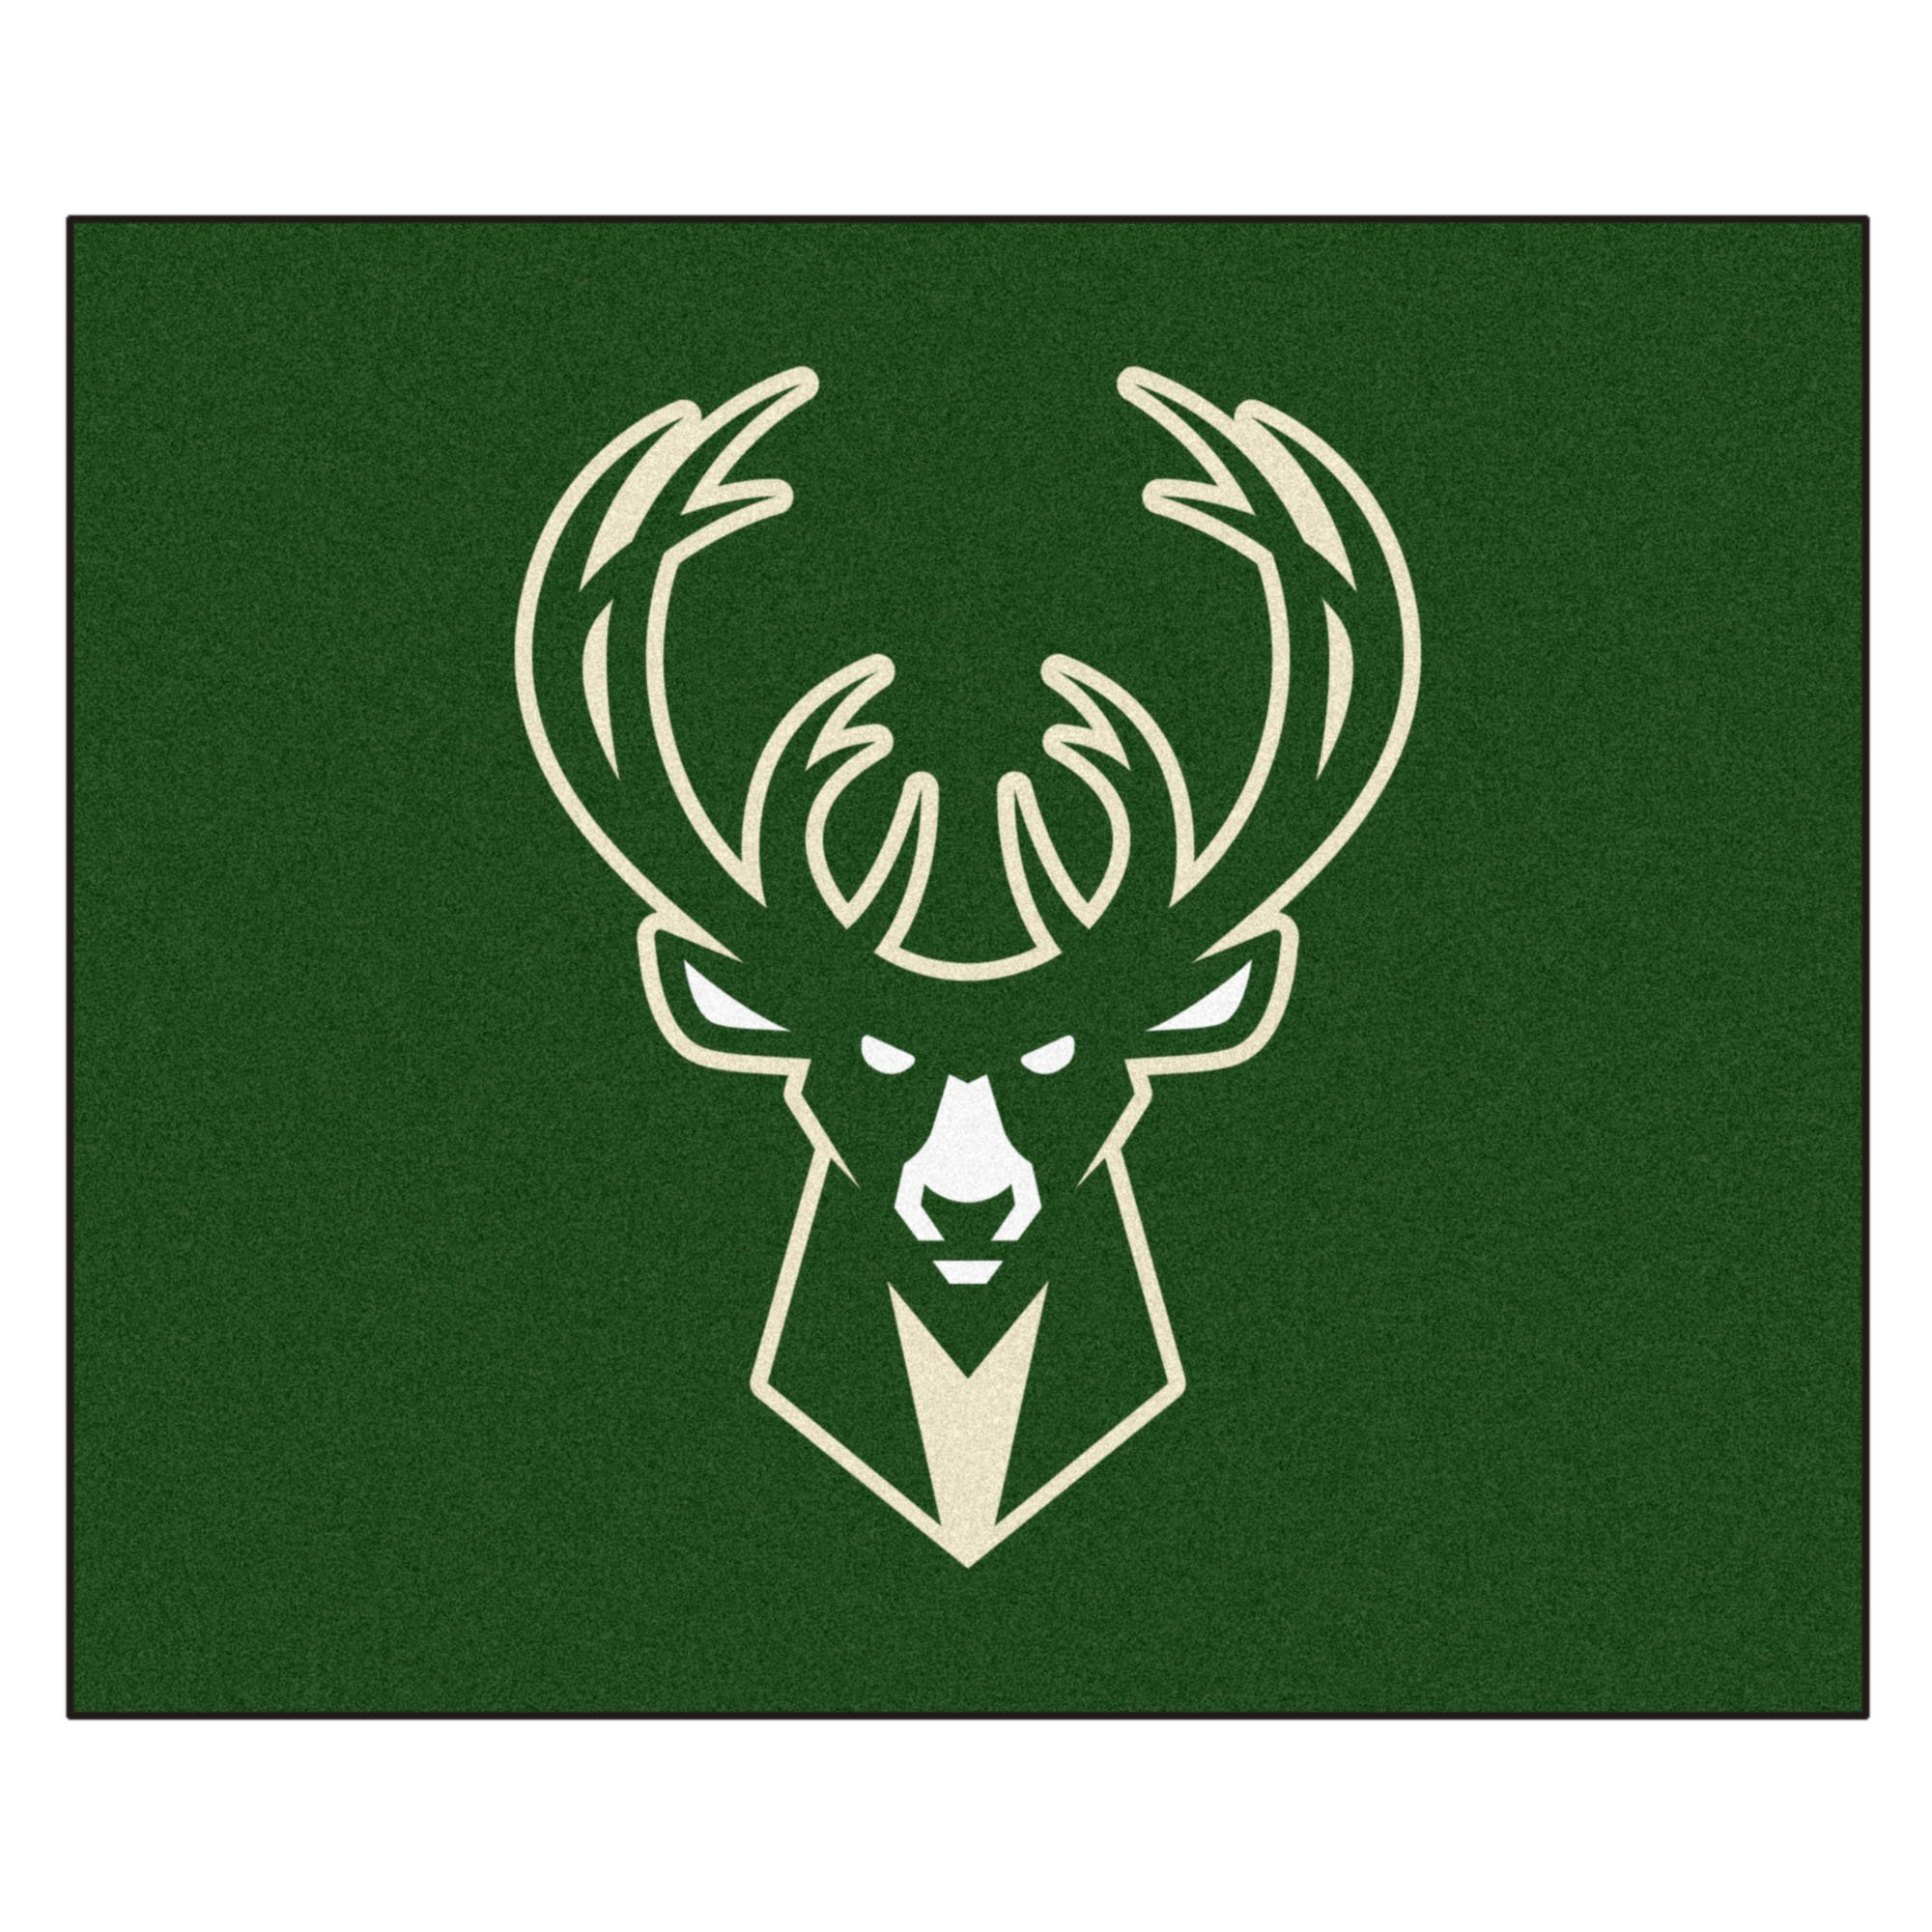 FANMATS 19454 NBA - Milwaukee Bucks Tailgater Rug , Team Color, 59.5''x71''